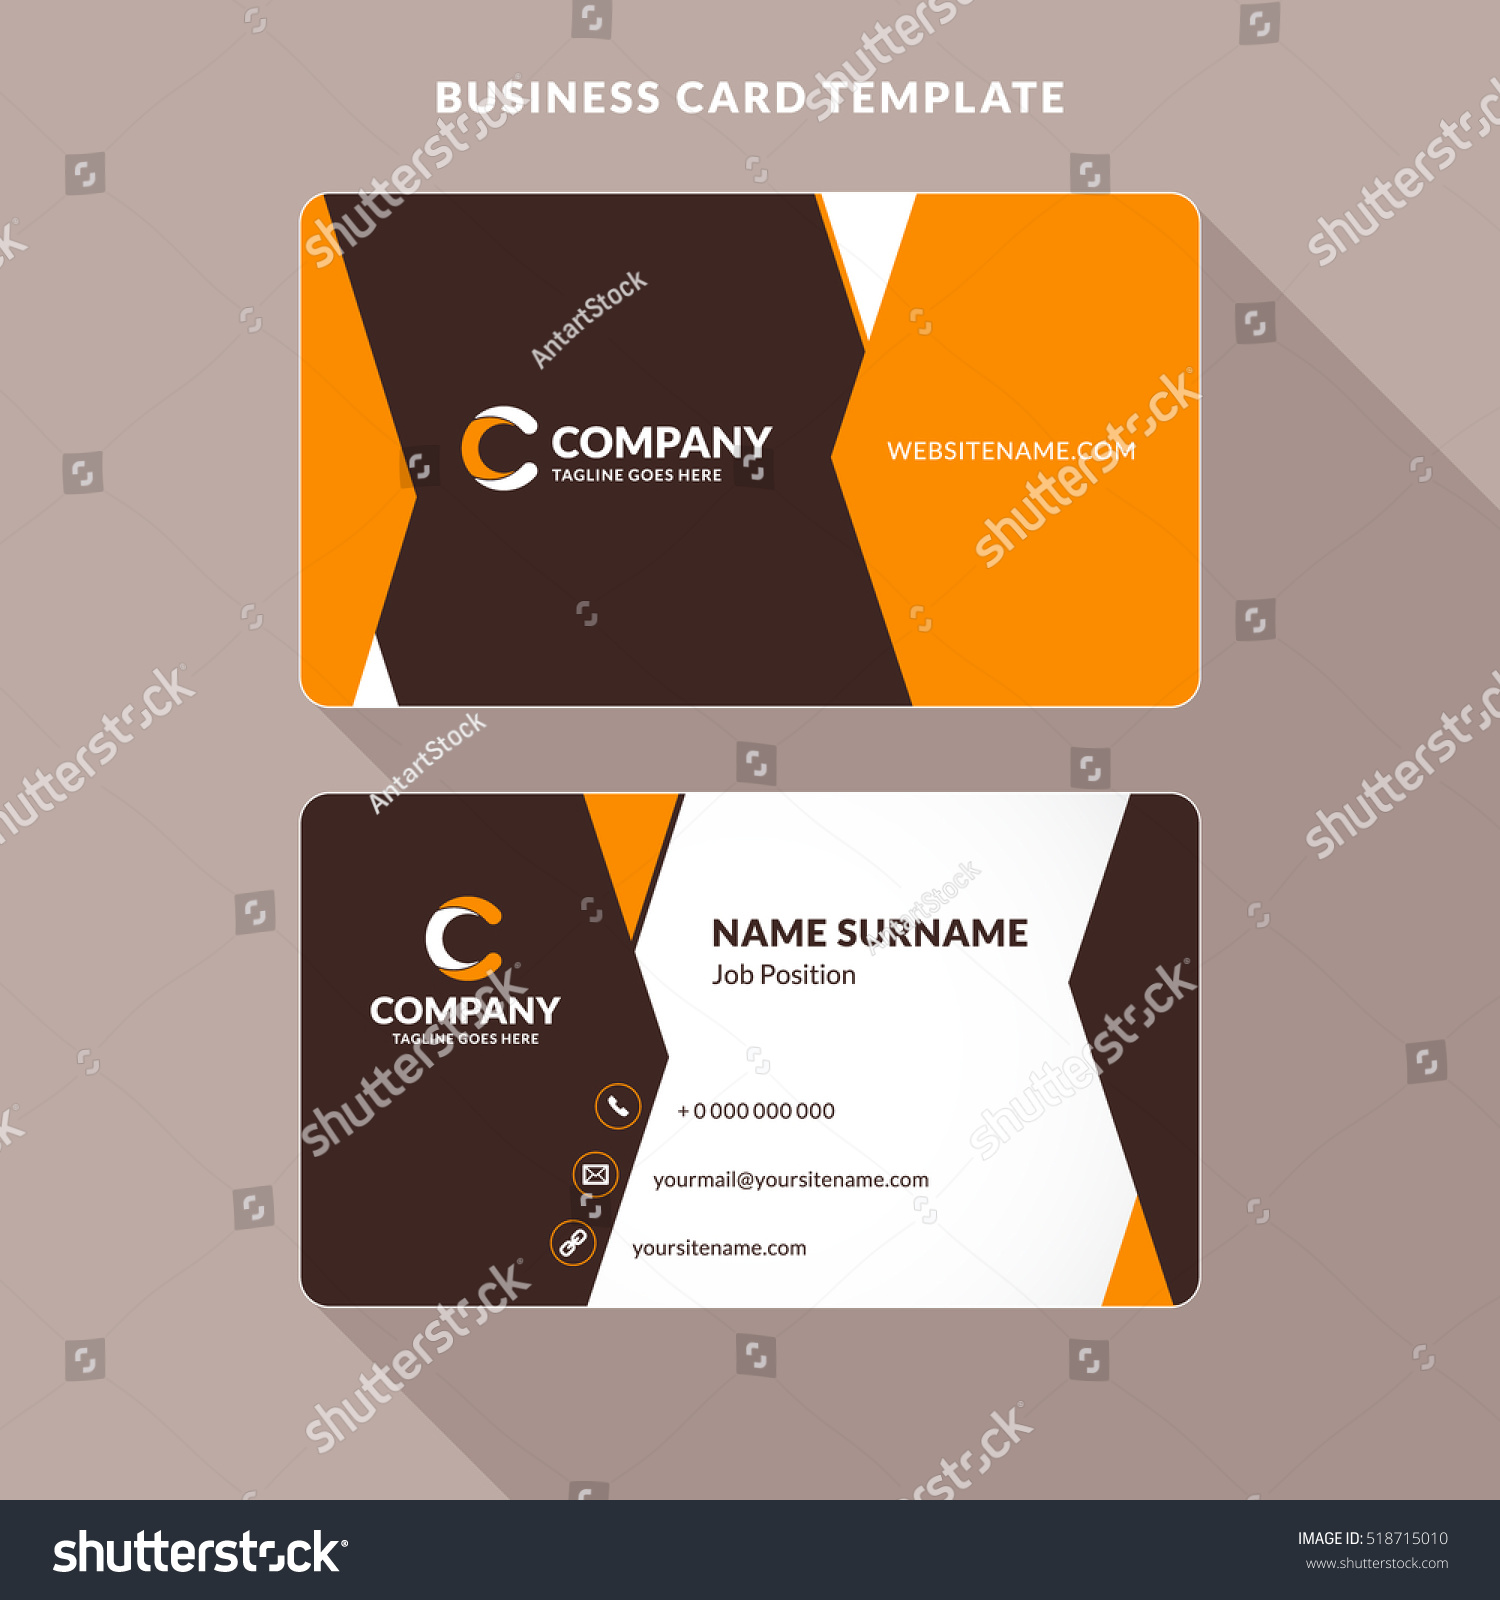 Double Sided Business Cards Template Word Gallery Templates - Double sided business cards template word